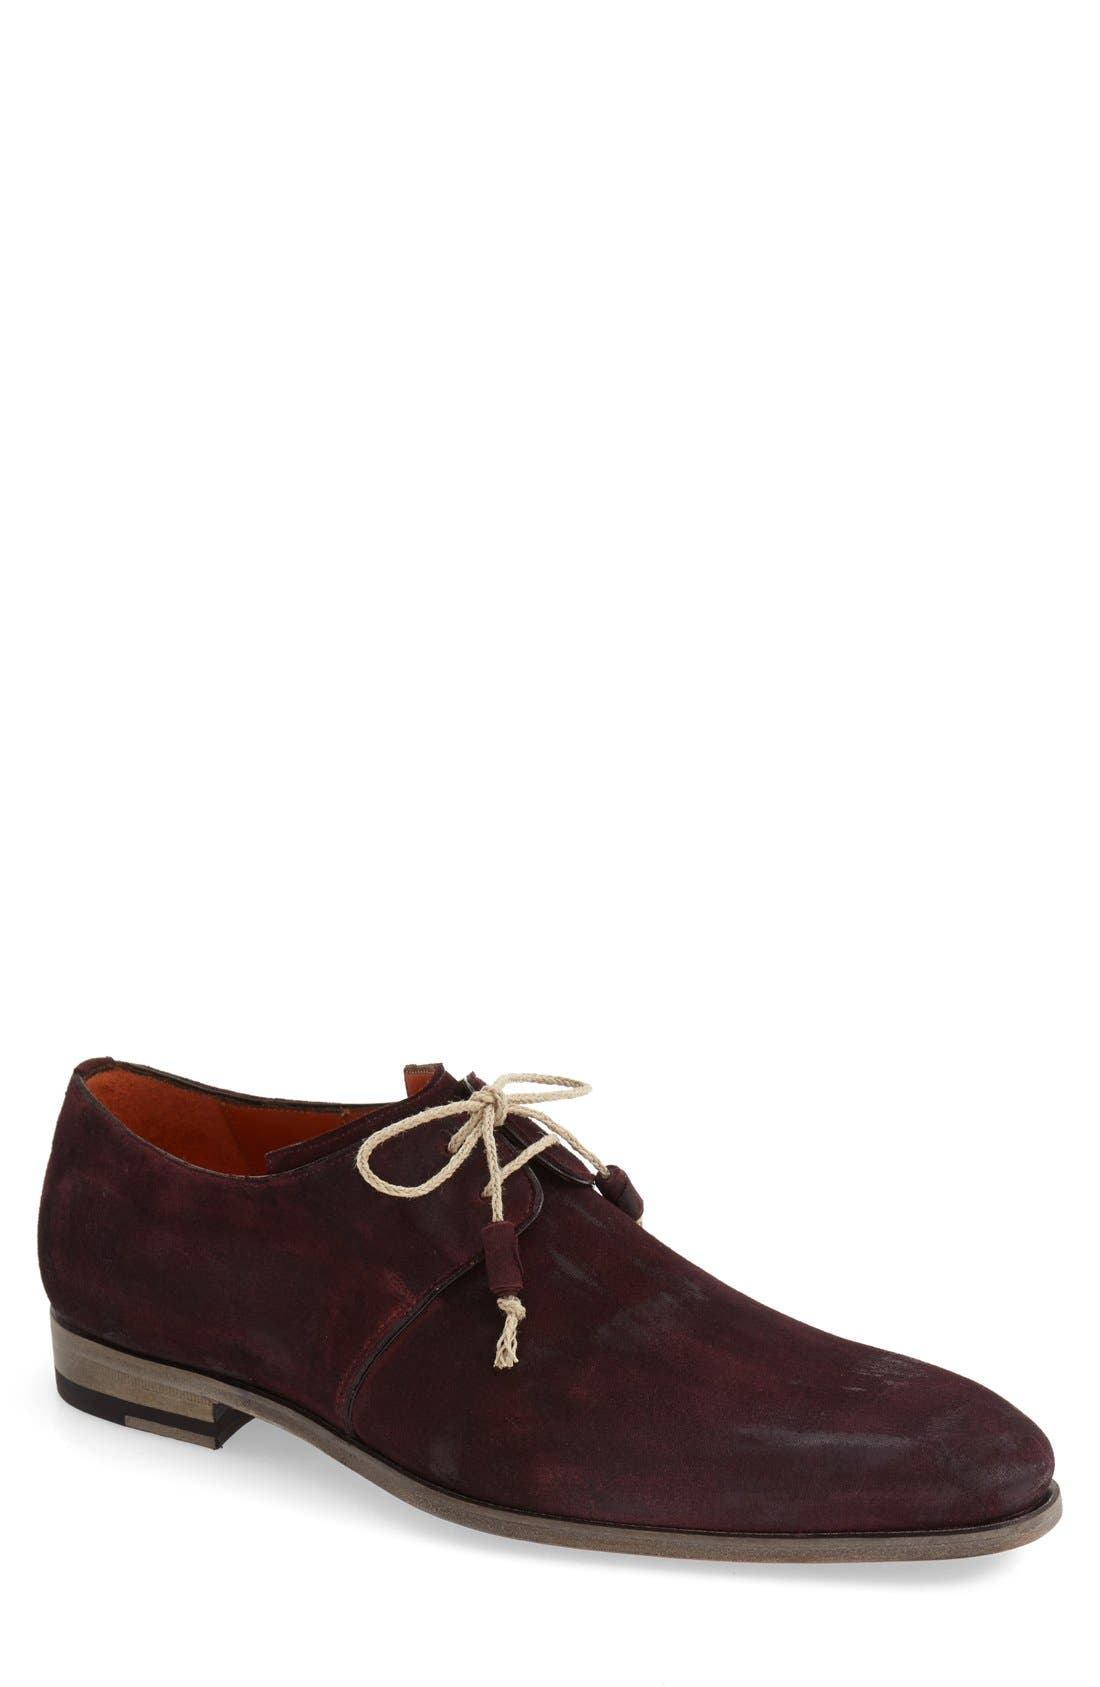 Alternate Image 1 Selected - Mezlan 'Fenis' Plain Toe Derby (Men)